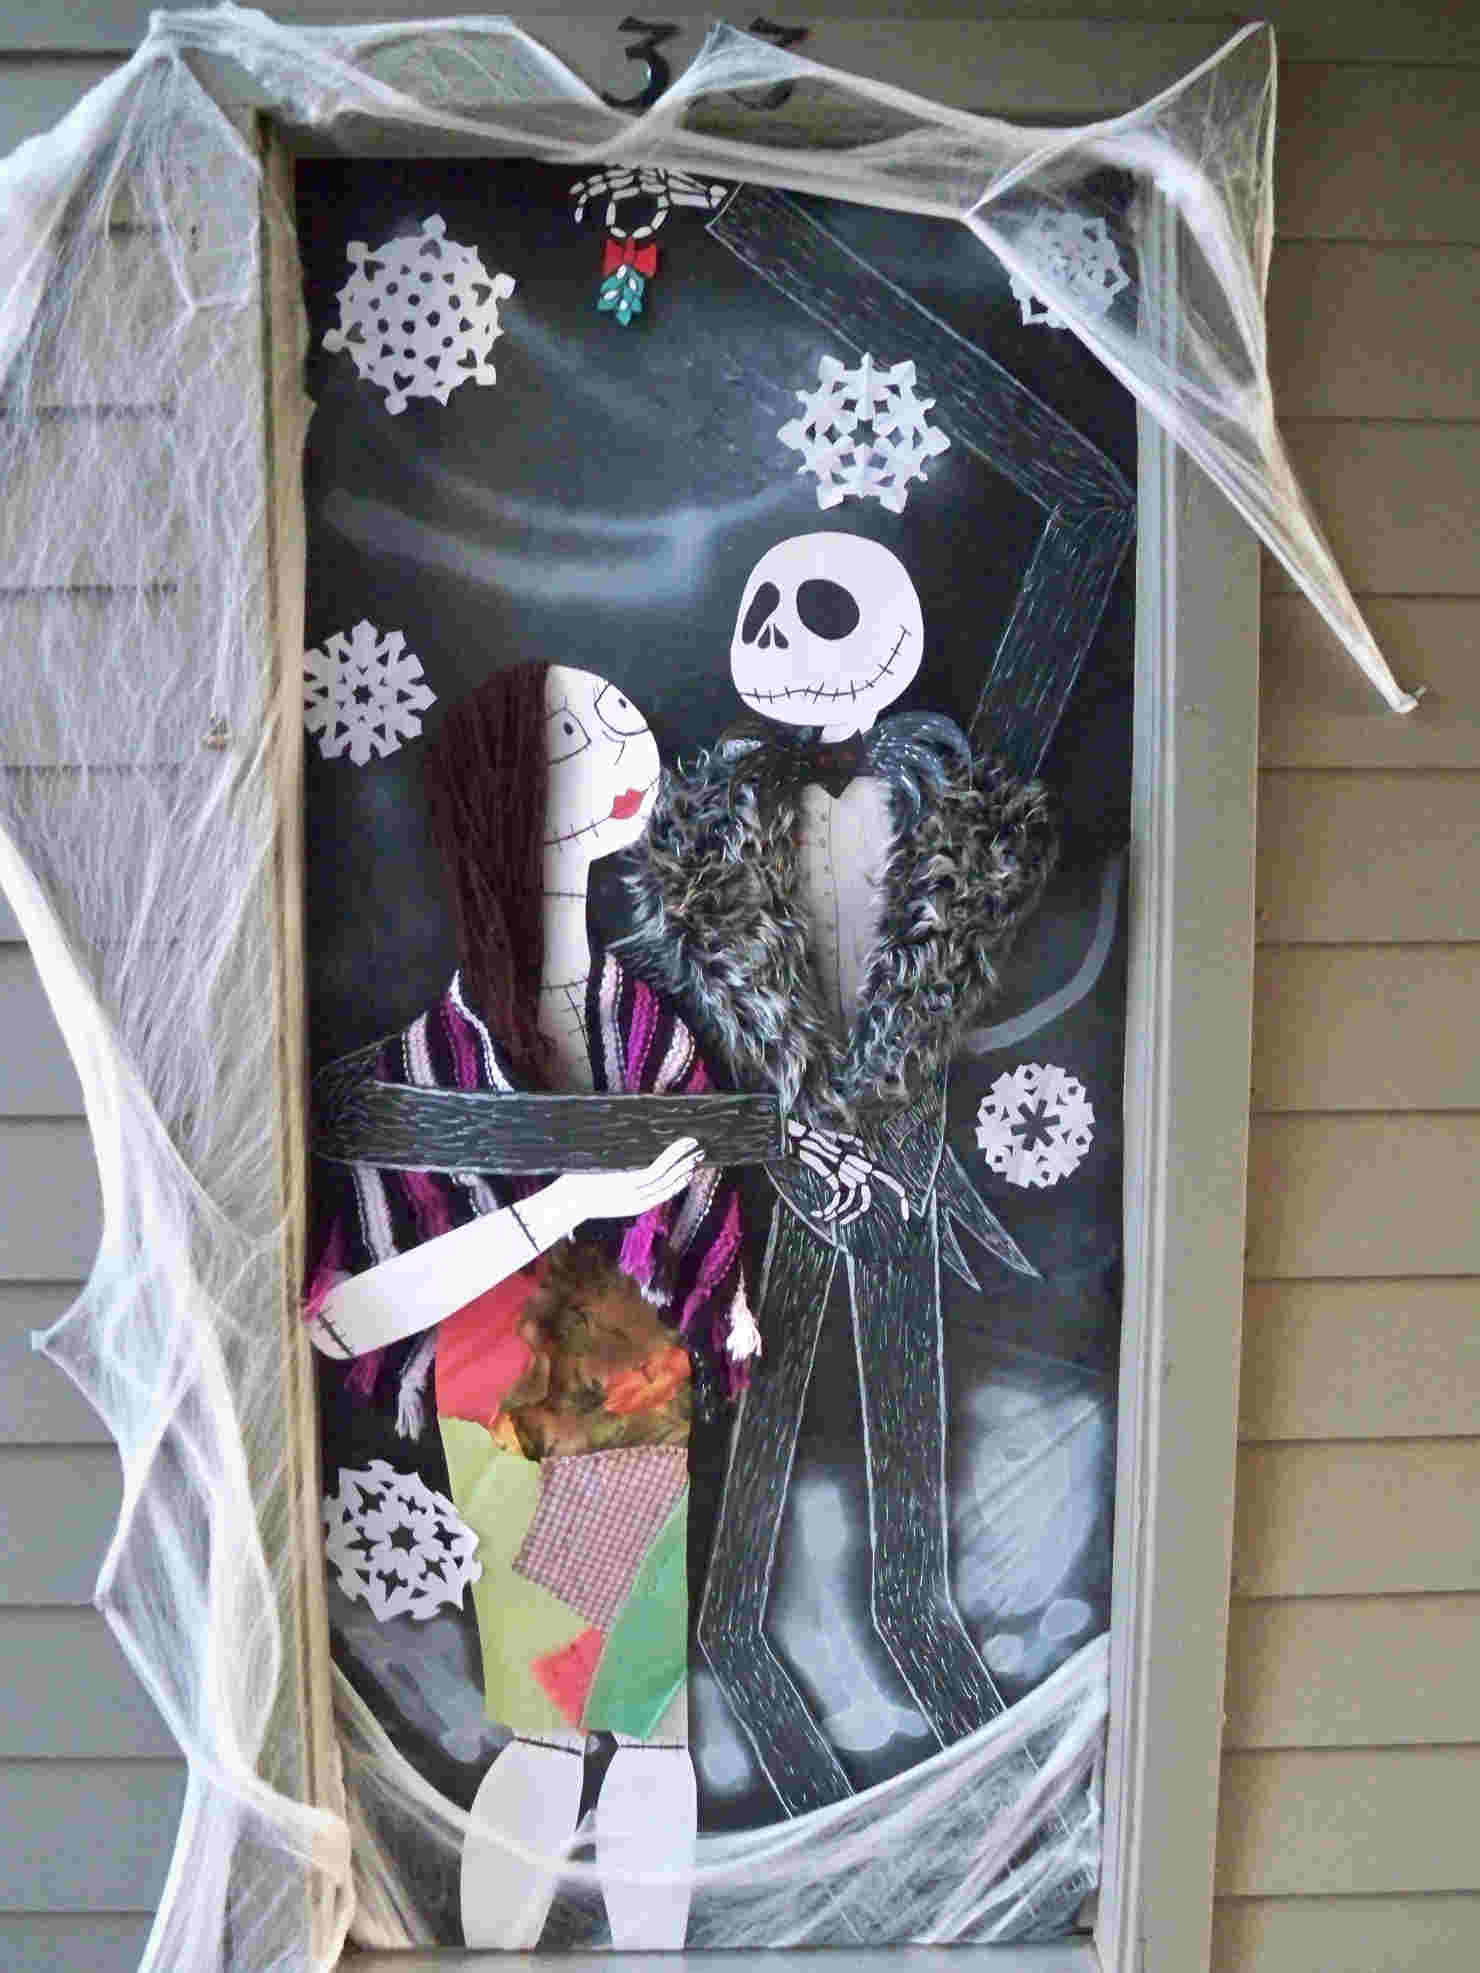 Decorating Ideas > Puertas De Halloween Vol 3  LaCelebracioncom ~ 105339_Halloween Door Ideas For Work